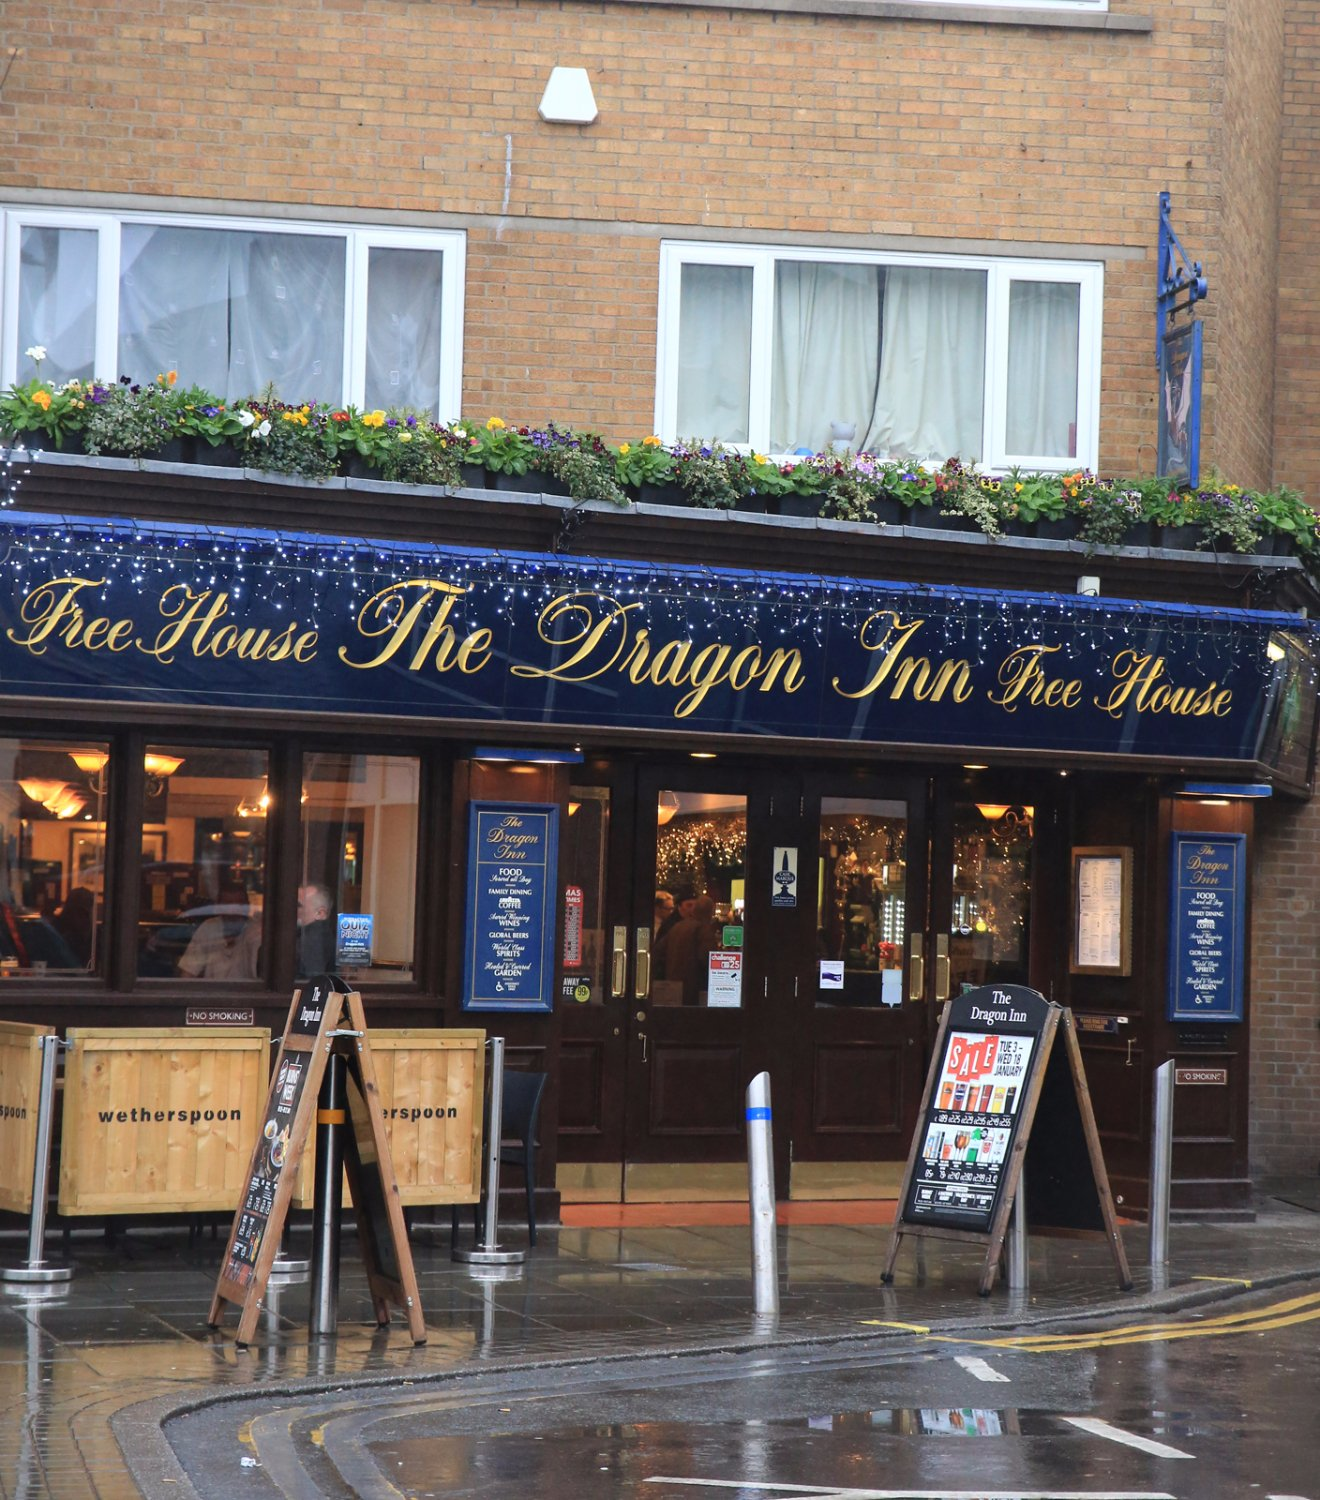 the dragon inn j d wetherspoon weston super mare restaurant